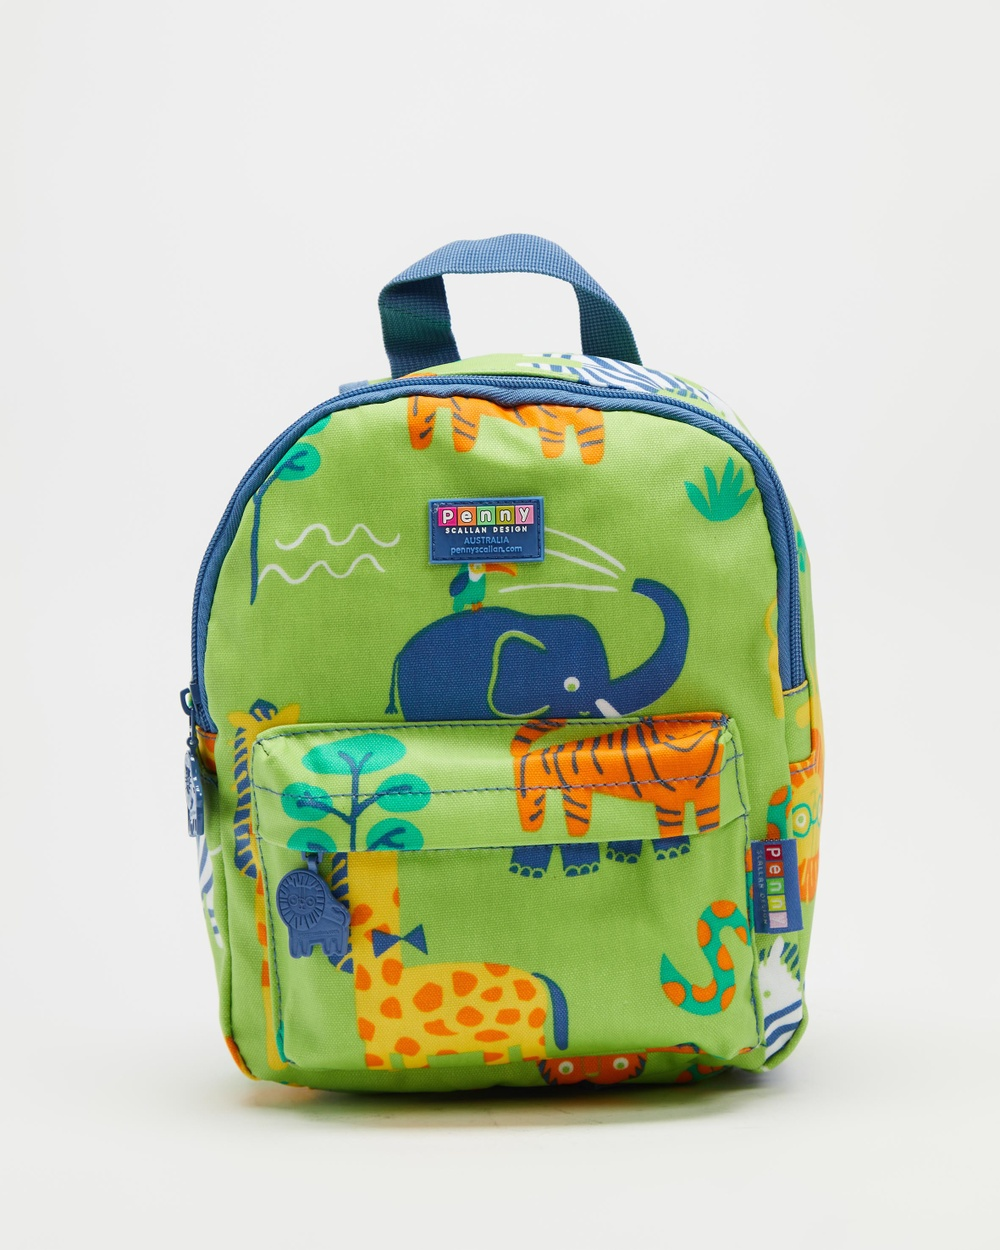 Penny Scallan Mini Backpack School with Rein Backpacks Wild Thing